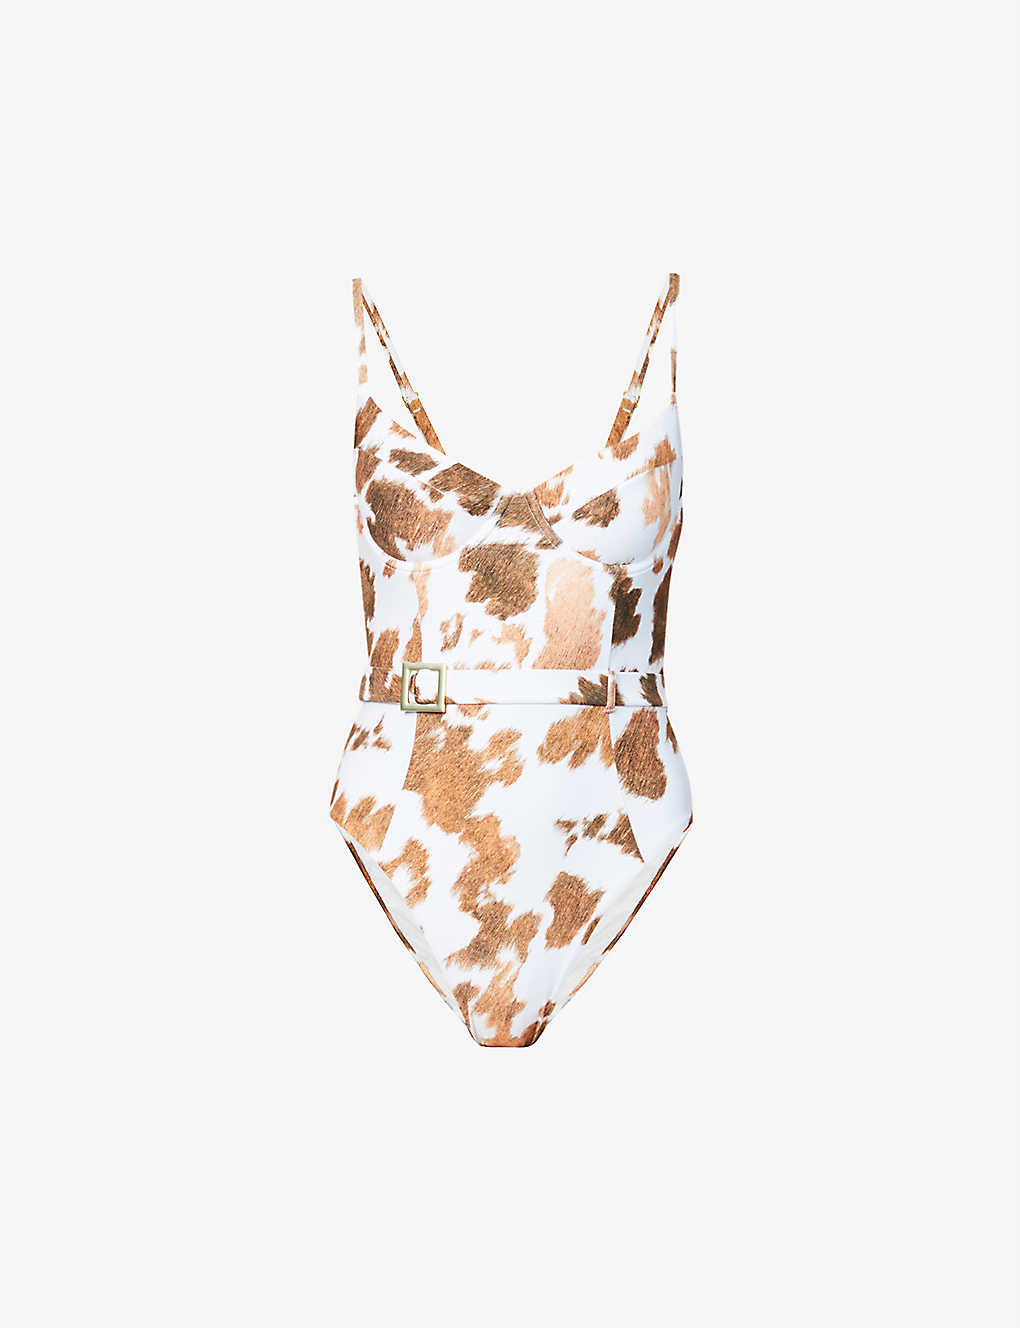 WEWOREWHAT: Onia x WeWoreWhat Danielle abstract-print swimsuit